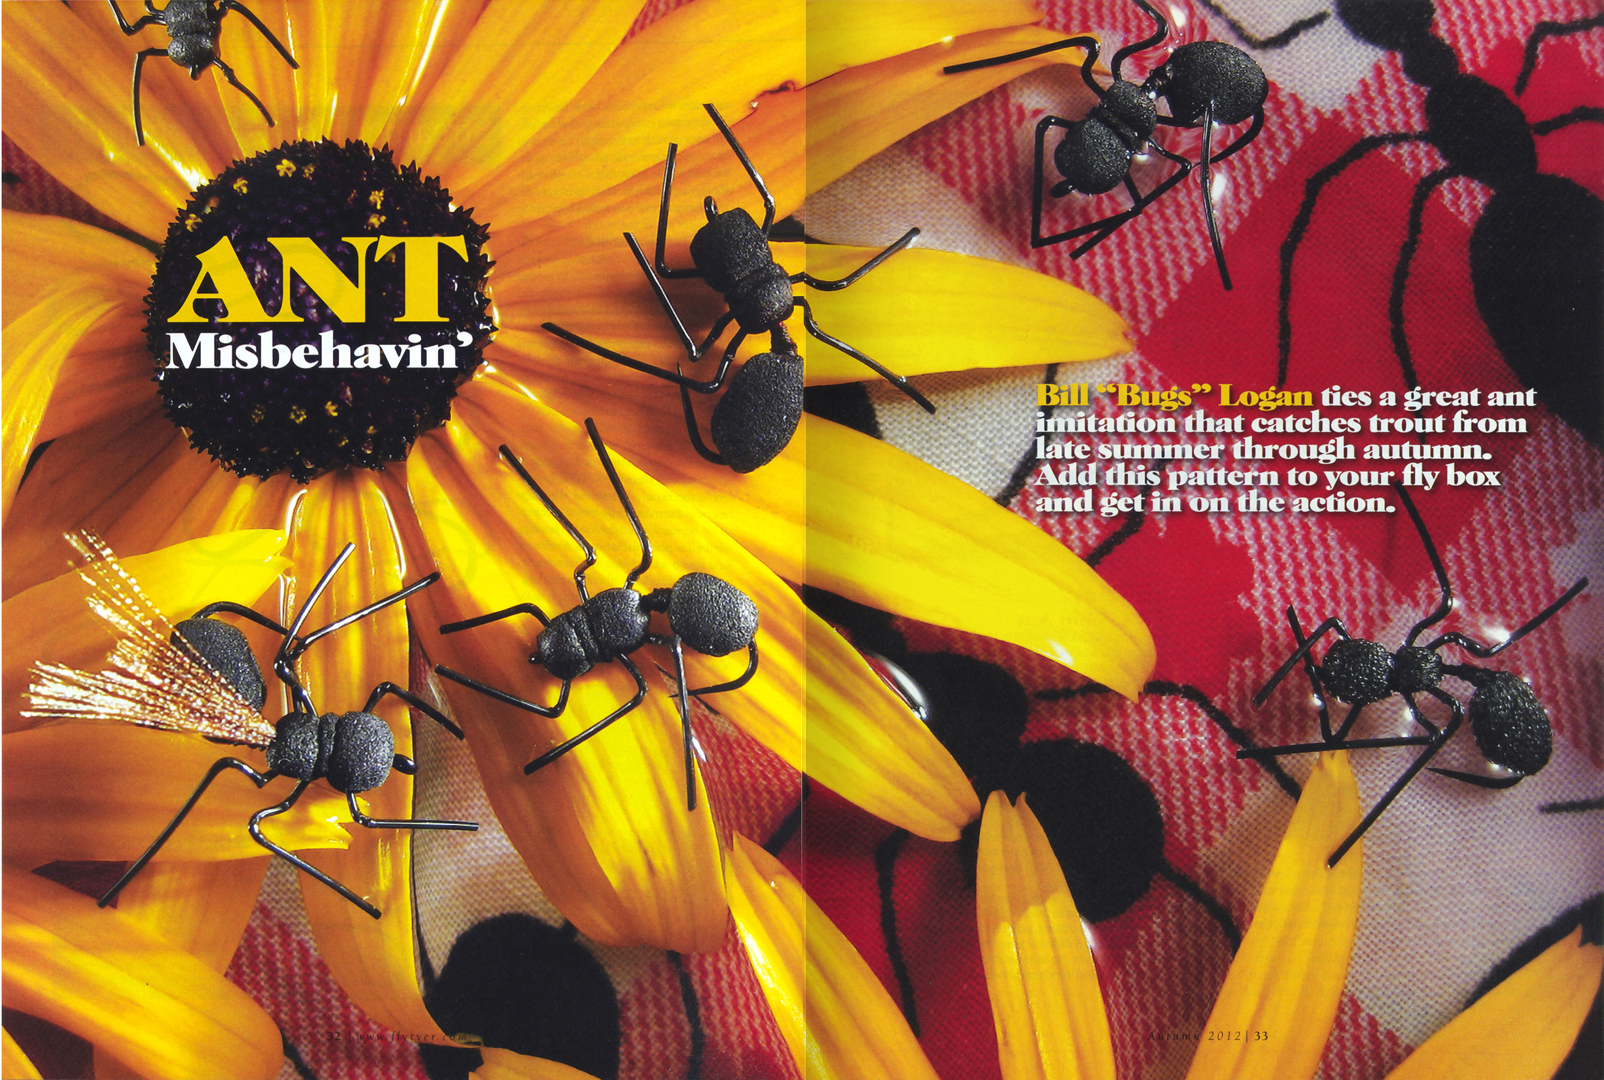 LOGAN-ANT MISBEHAVIN SPREAD